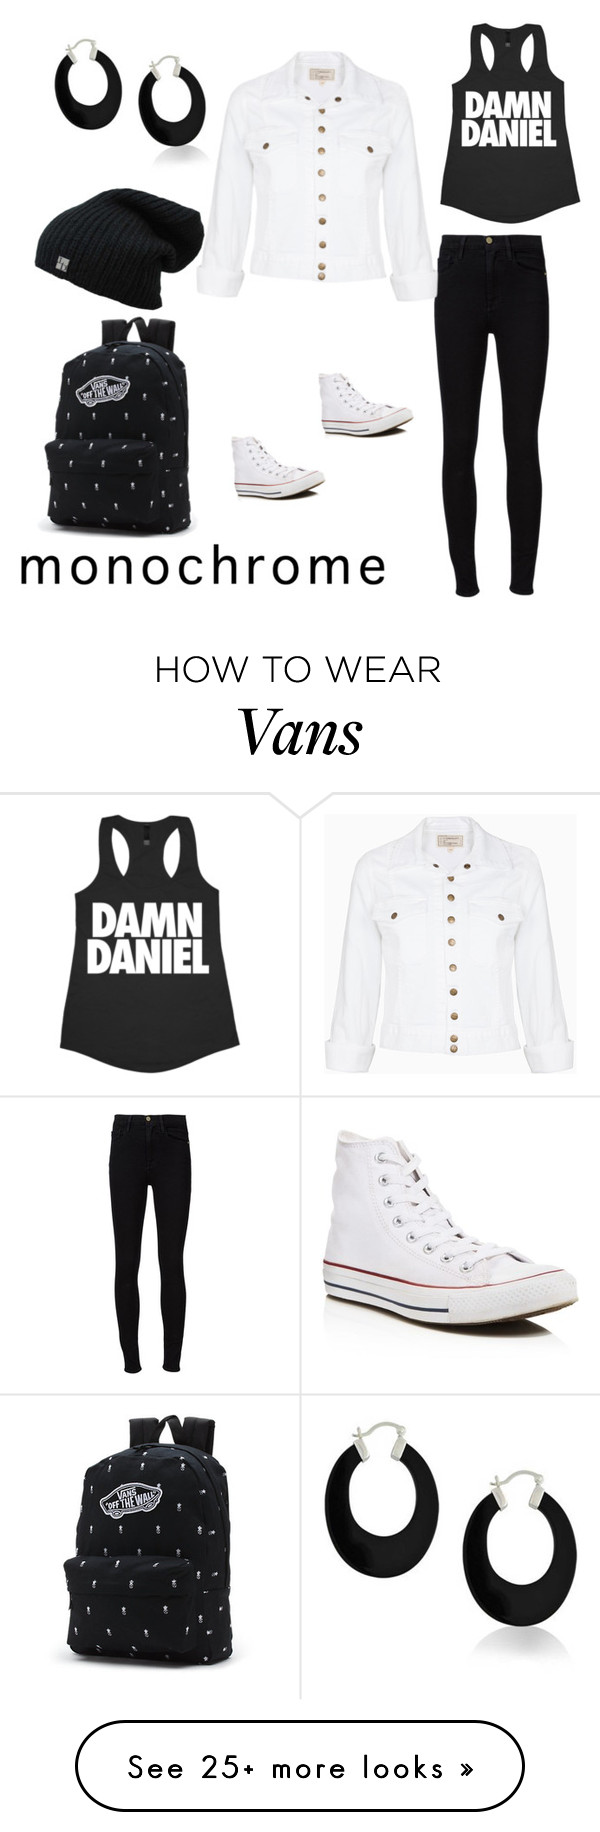 """Monochrome in the city"" by skye-garrett on Polyvore featuring Frame Denim, Current/Elliott, Converse, Bling Jewelry, Vans and monochrome"